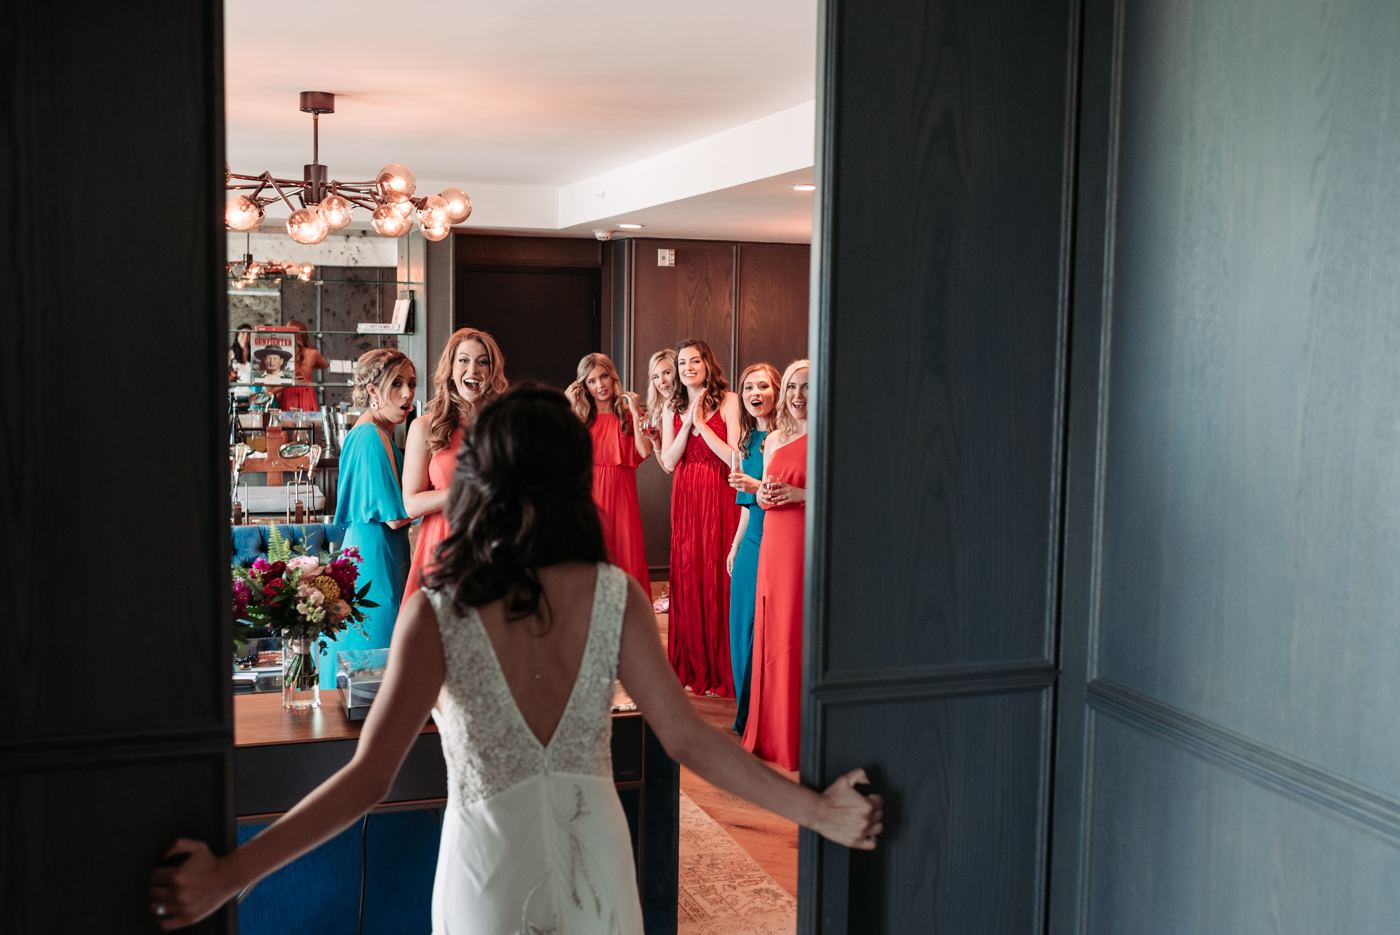 Bridal party Bennett Brown photography wedding bridal gown bride